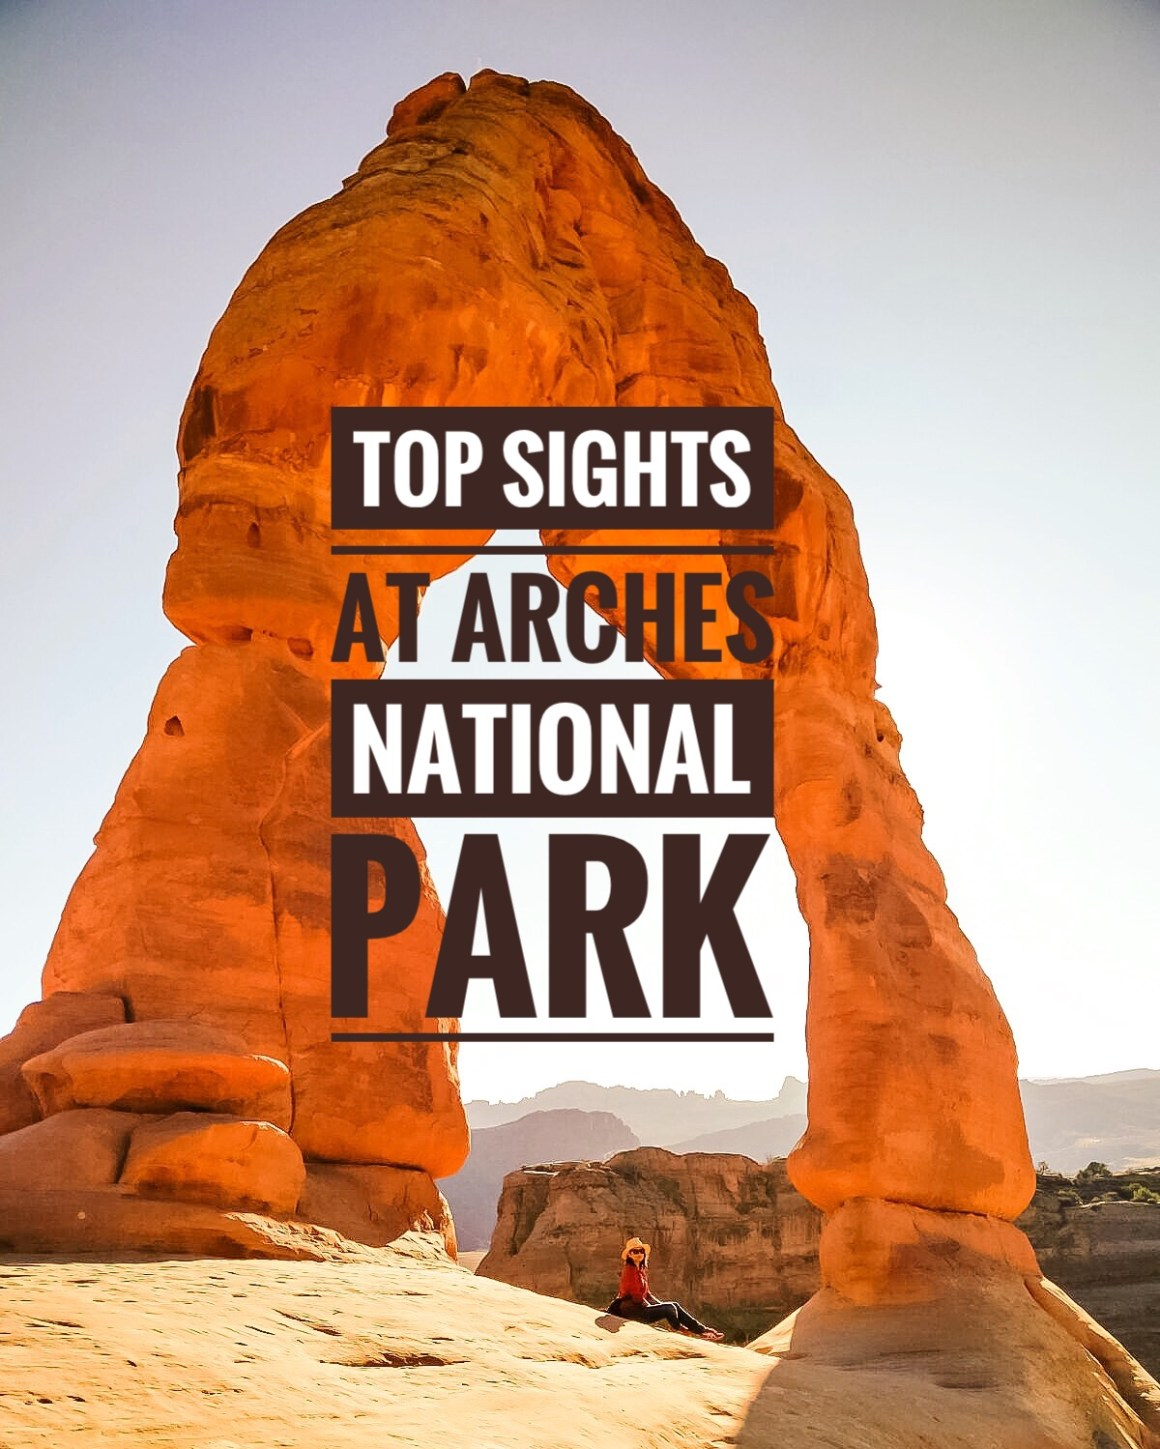 Top Sights At Arches National Park - The Vagabond Wayfarer